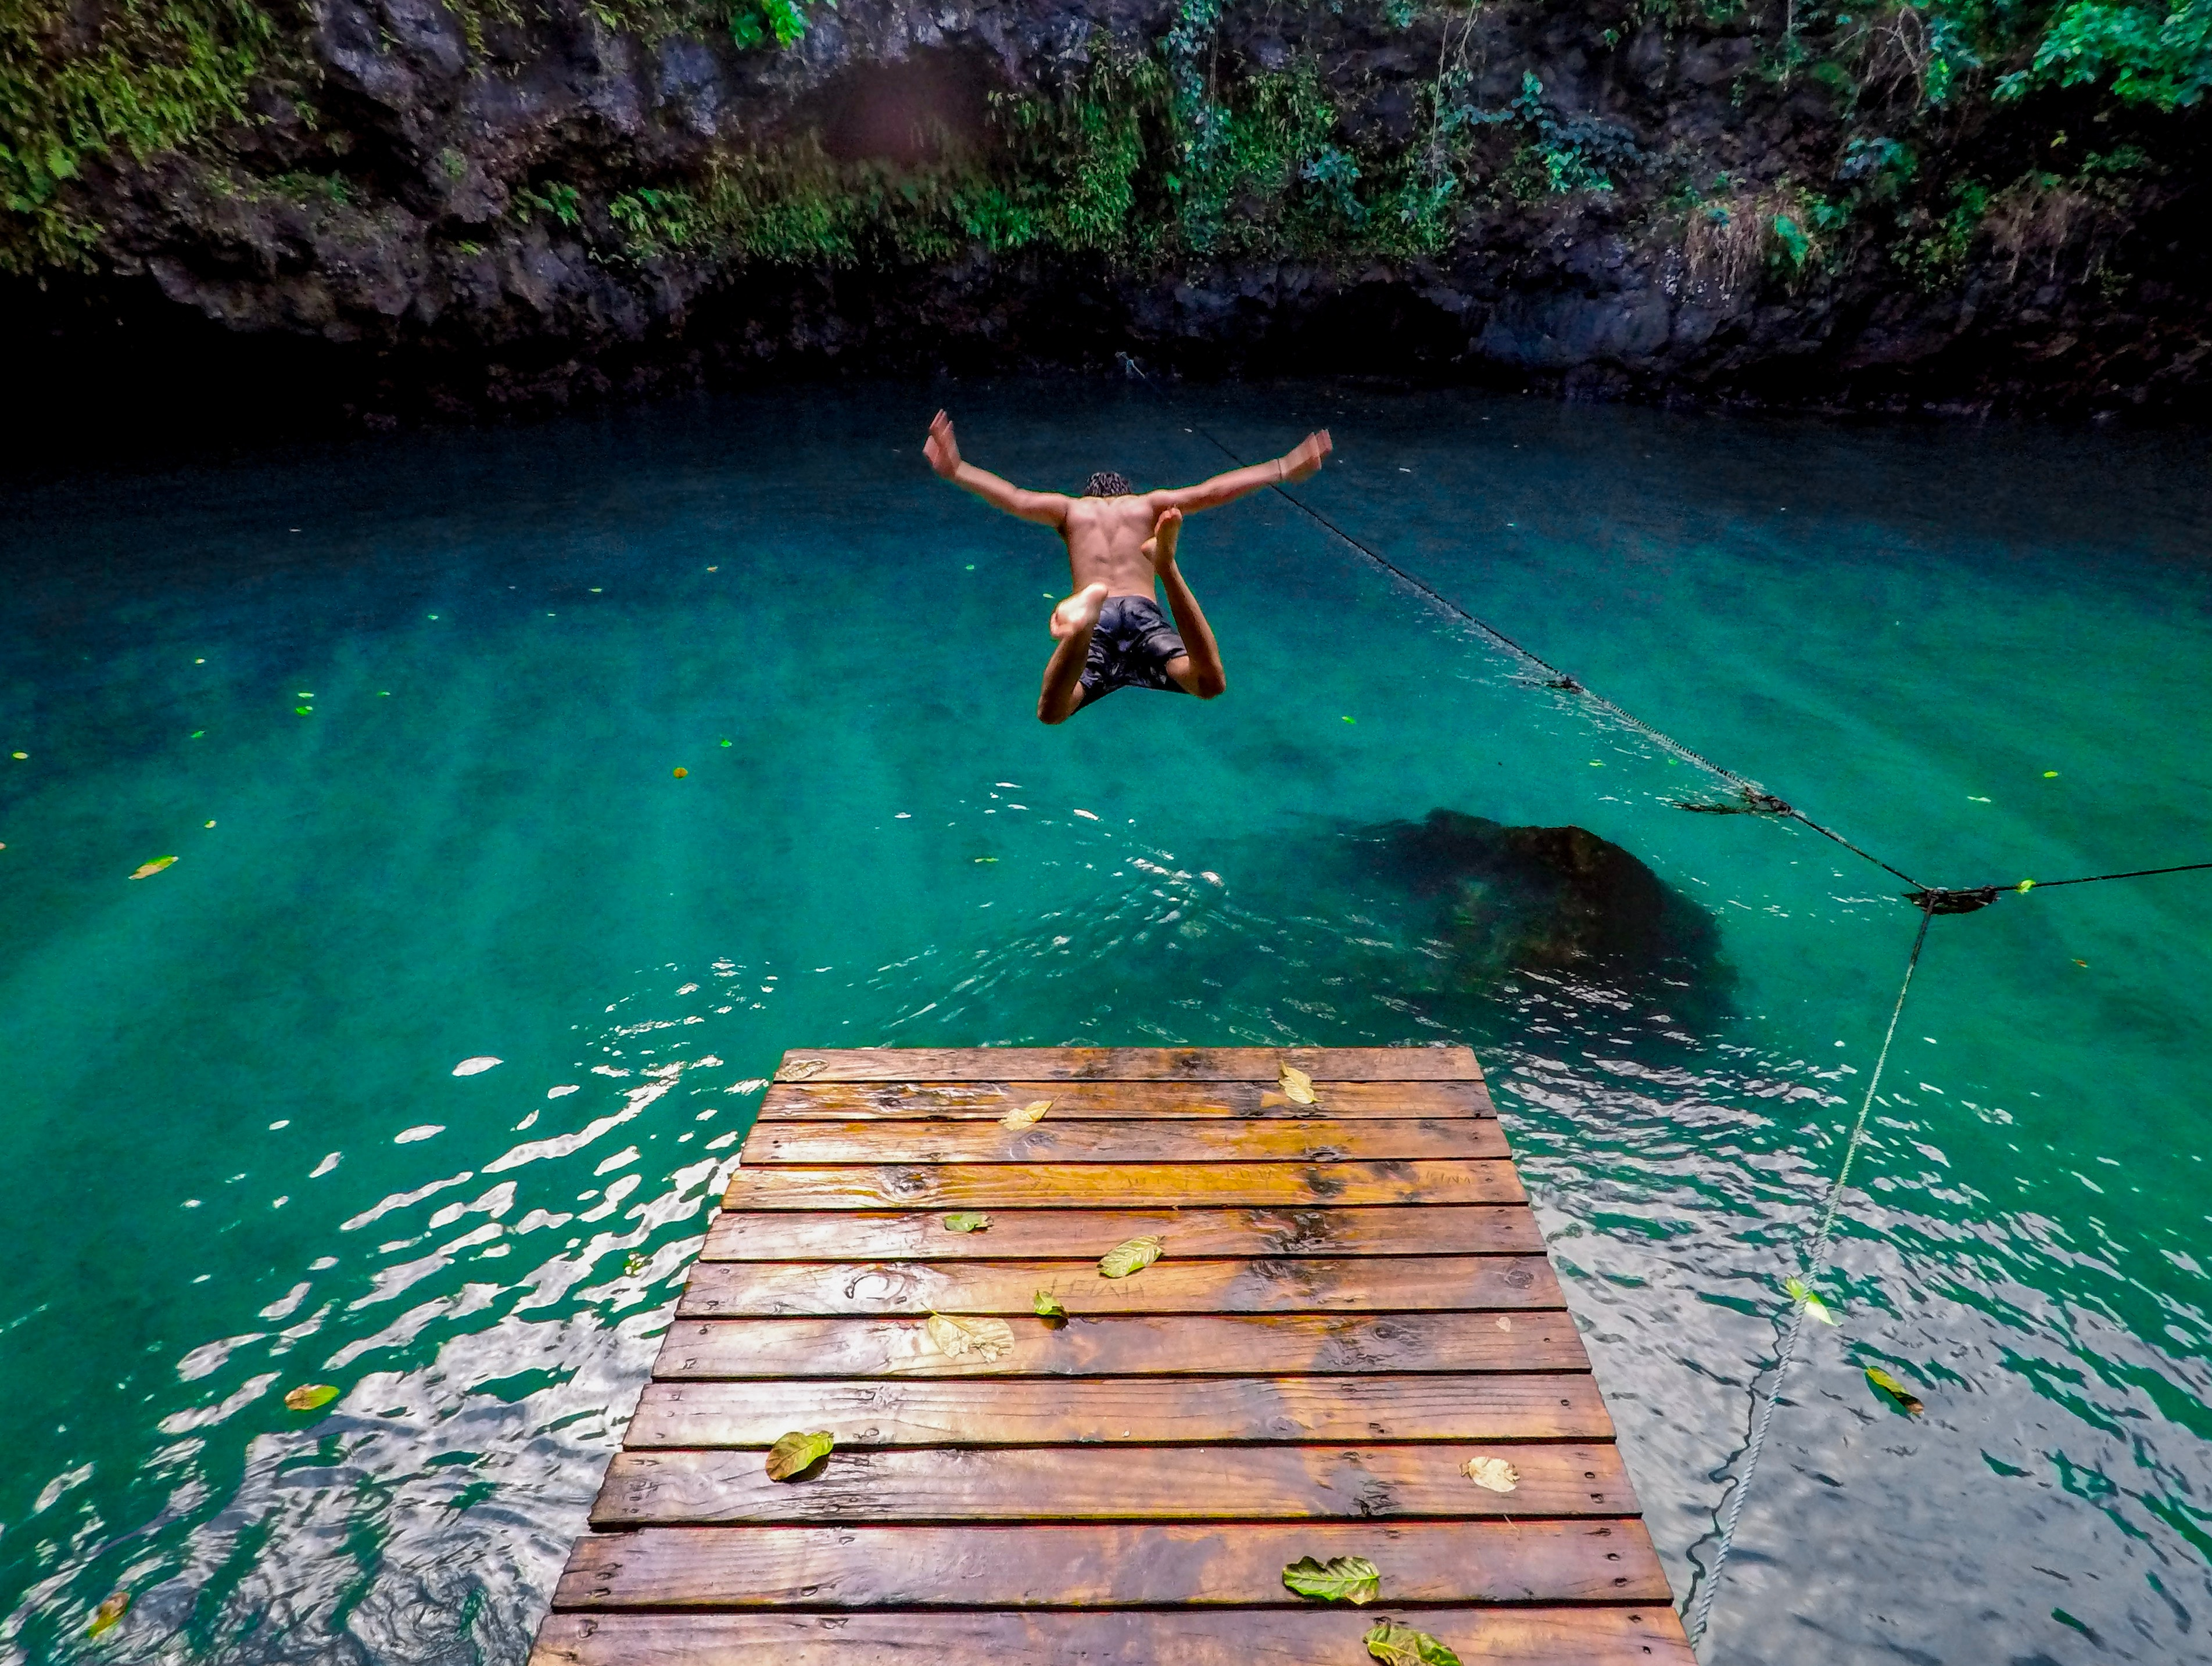 Jumping into the water off a dock in Samoa